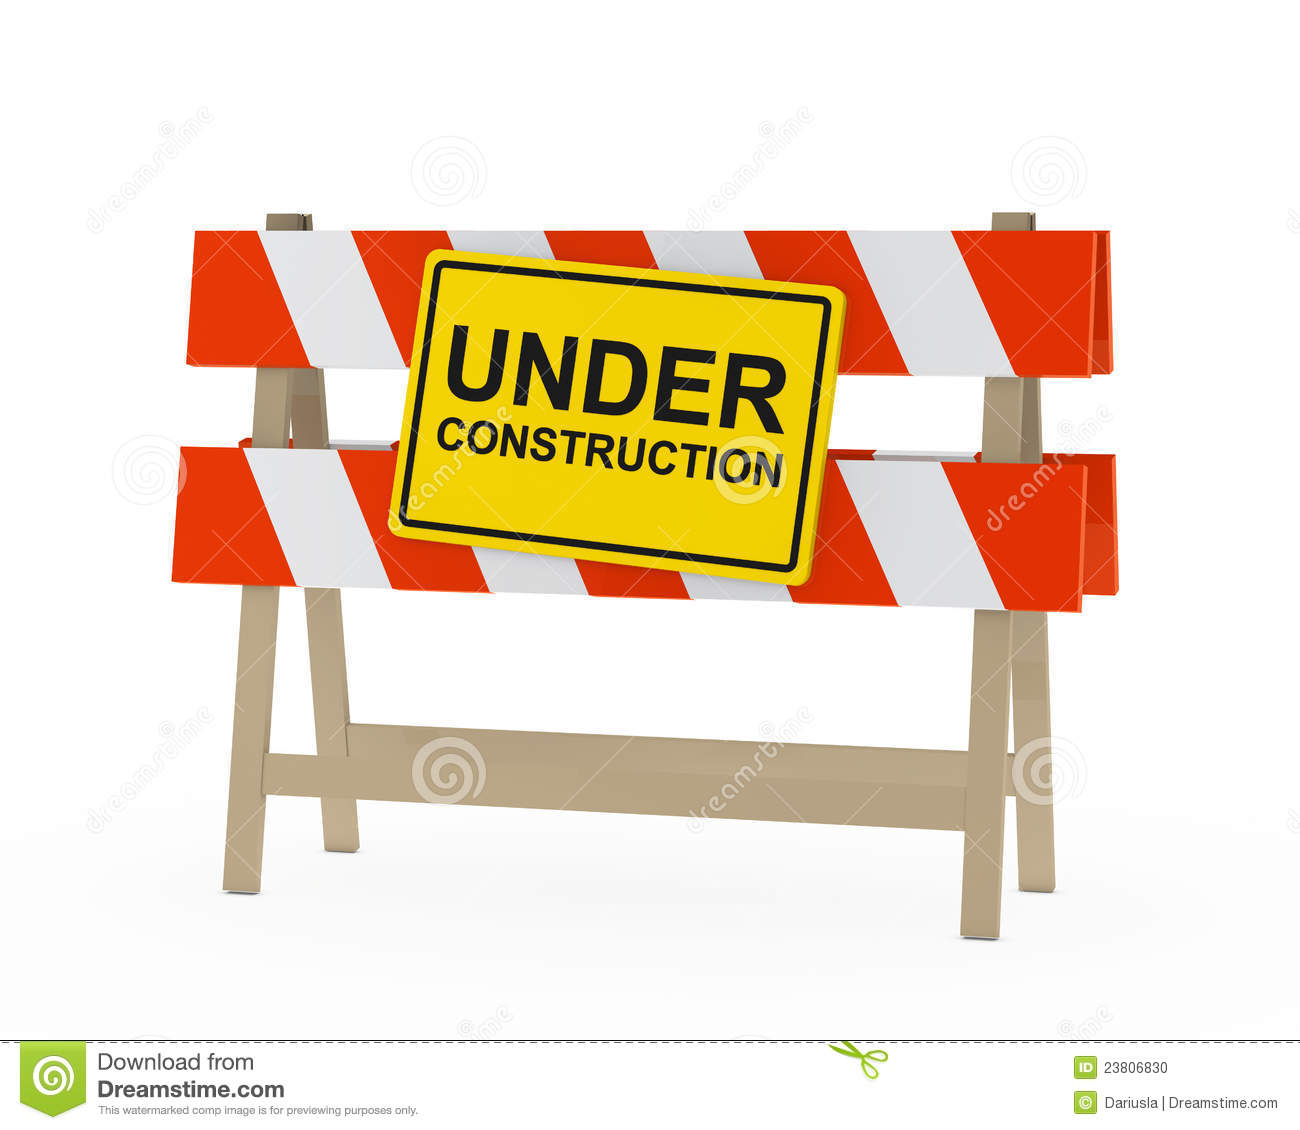 Under construction barrier stock illustration